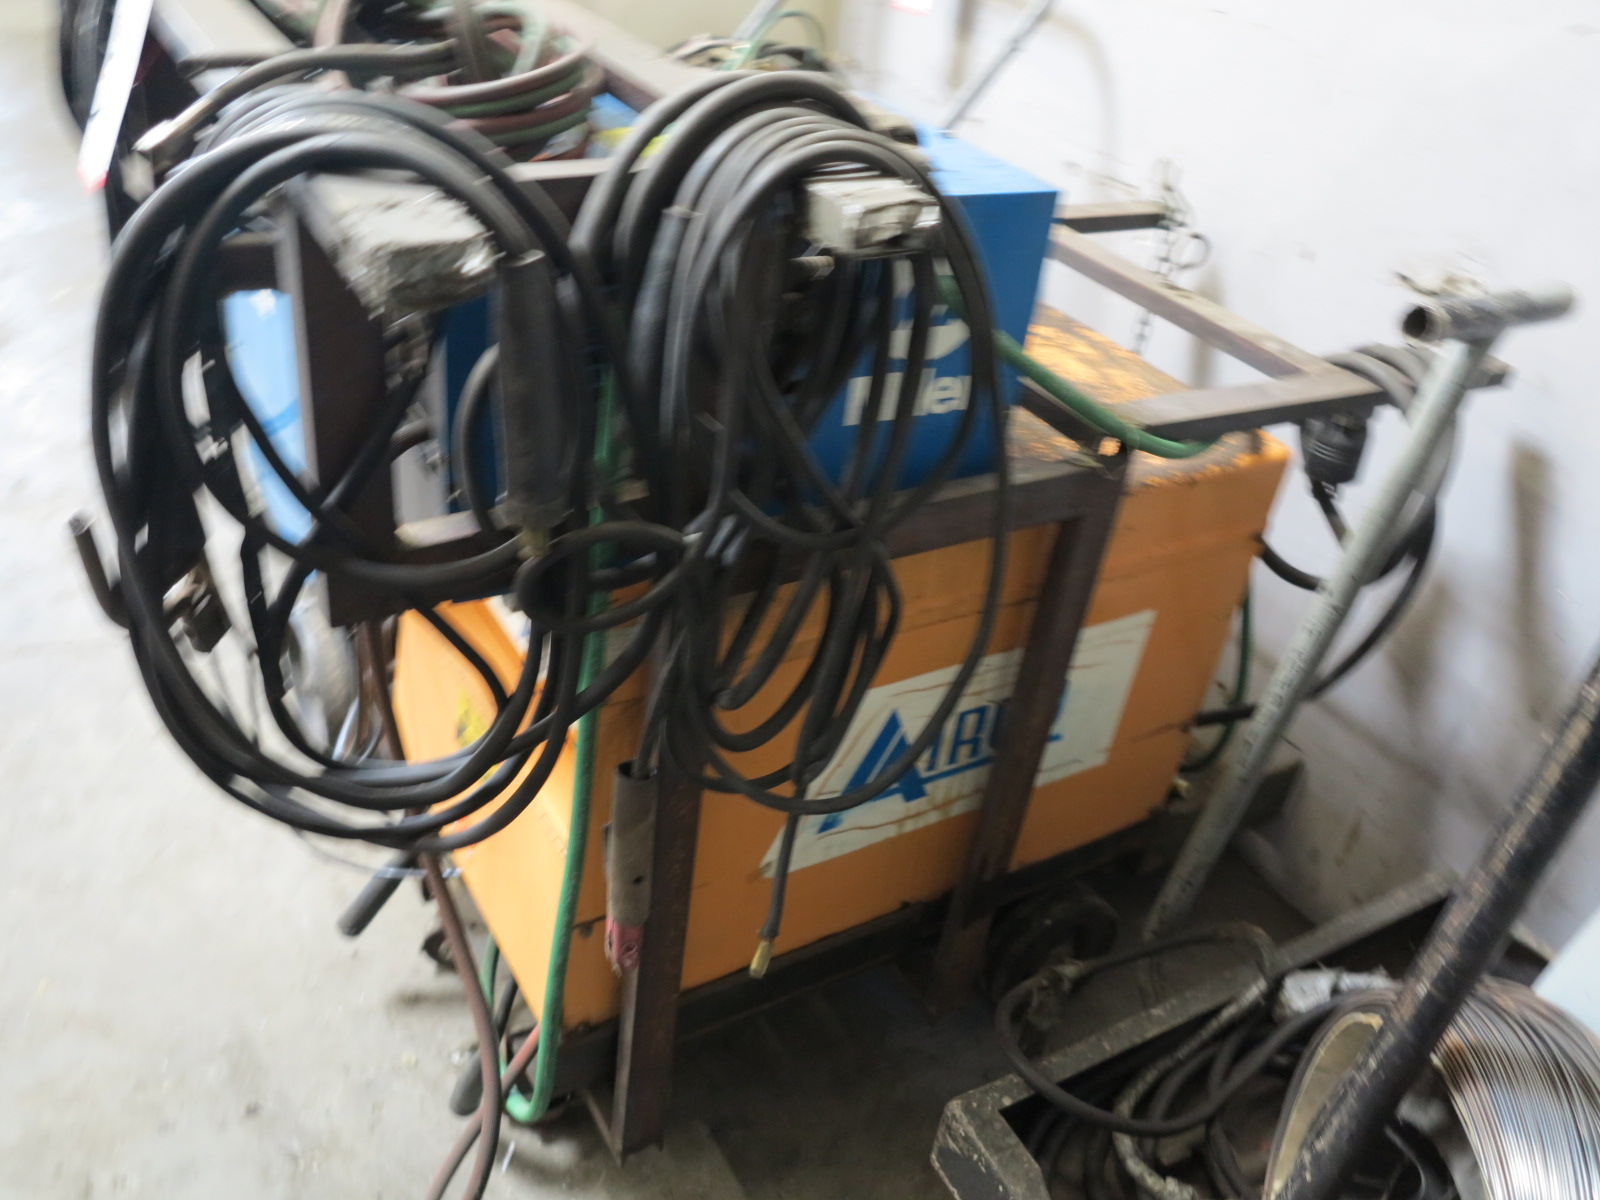 AIRCO 250 AMP AC/DC HELIWELDER, STOCK NO. 1341-0160, S/N HG006554, W/ MILLER RADIATOR-1 COOLING - Image 2 of 2